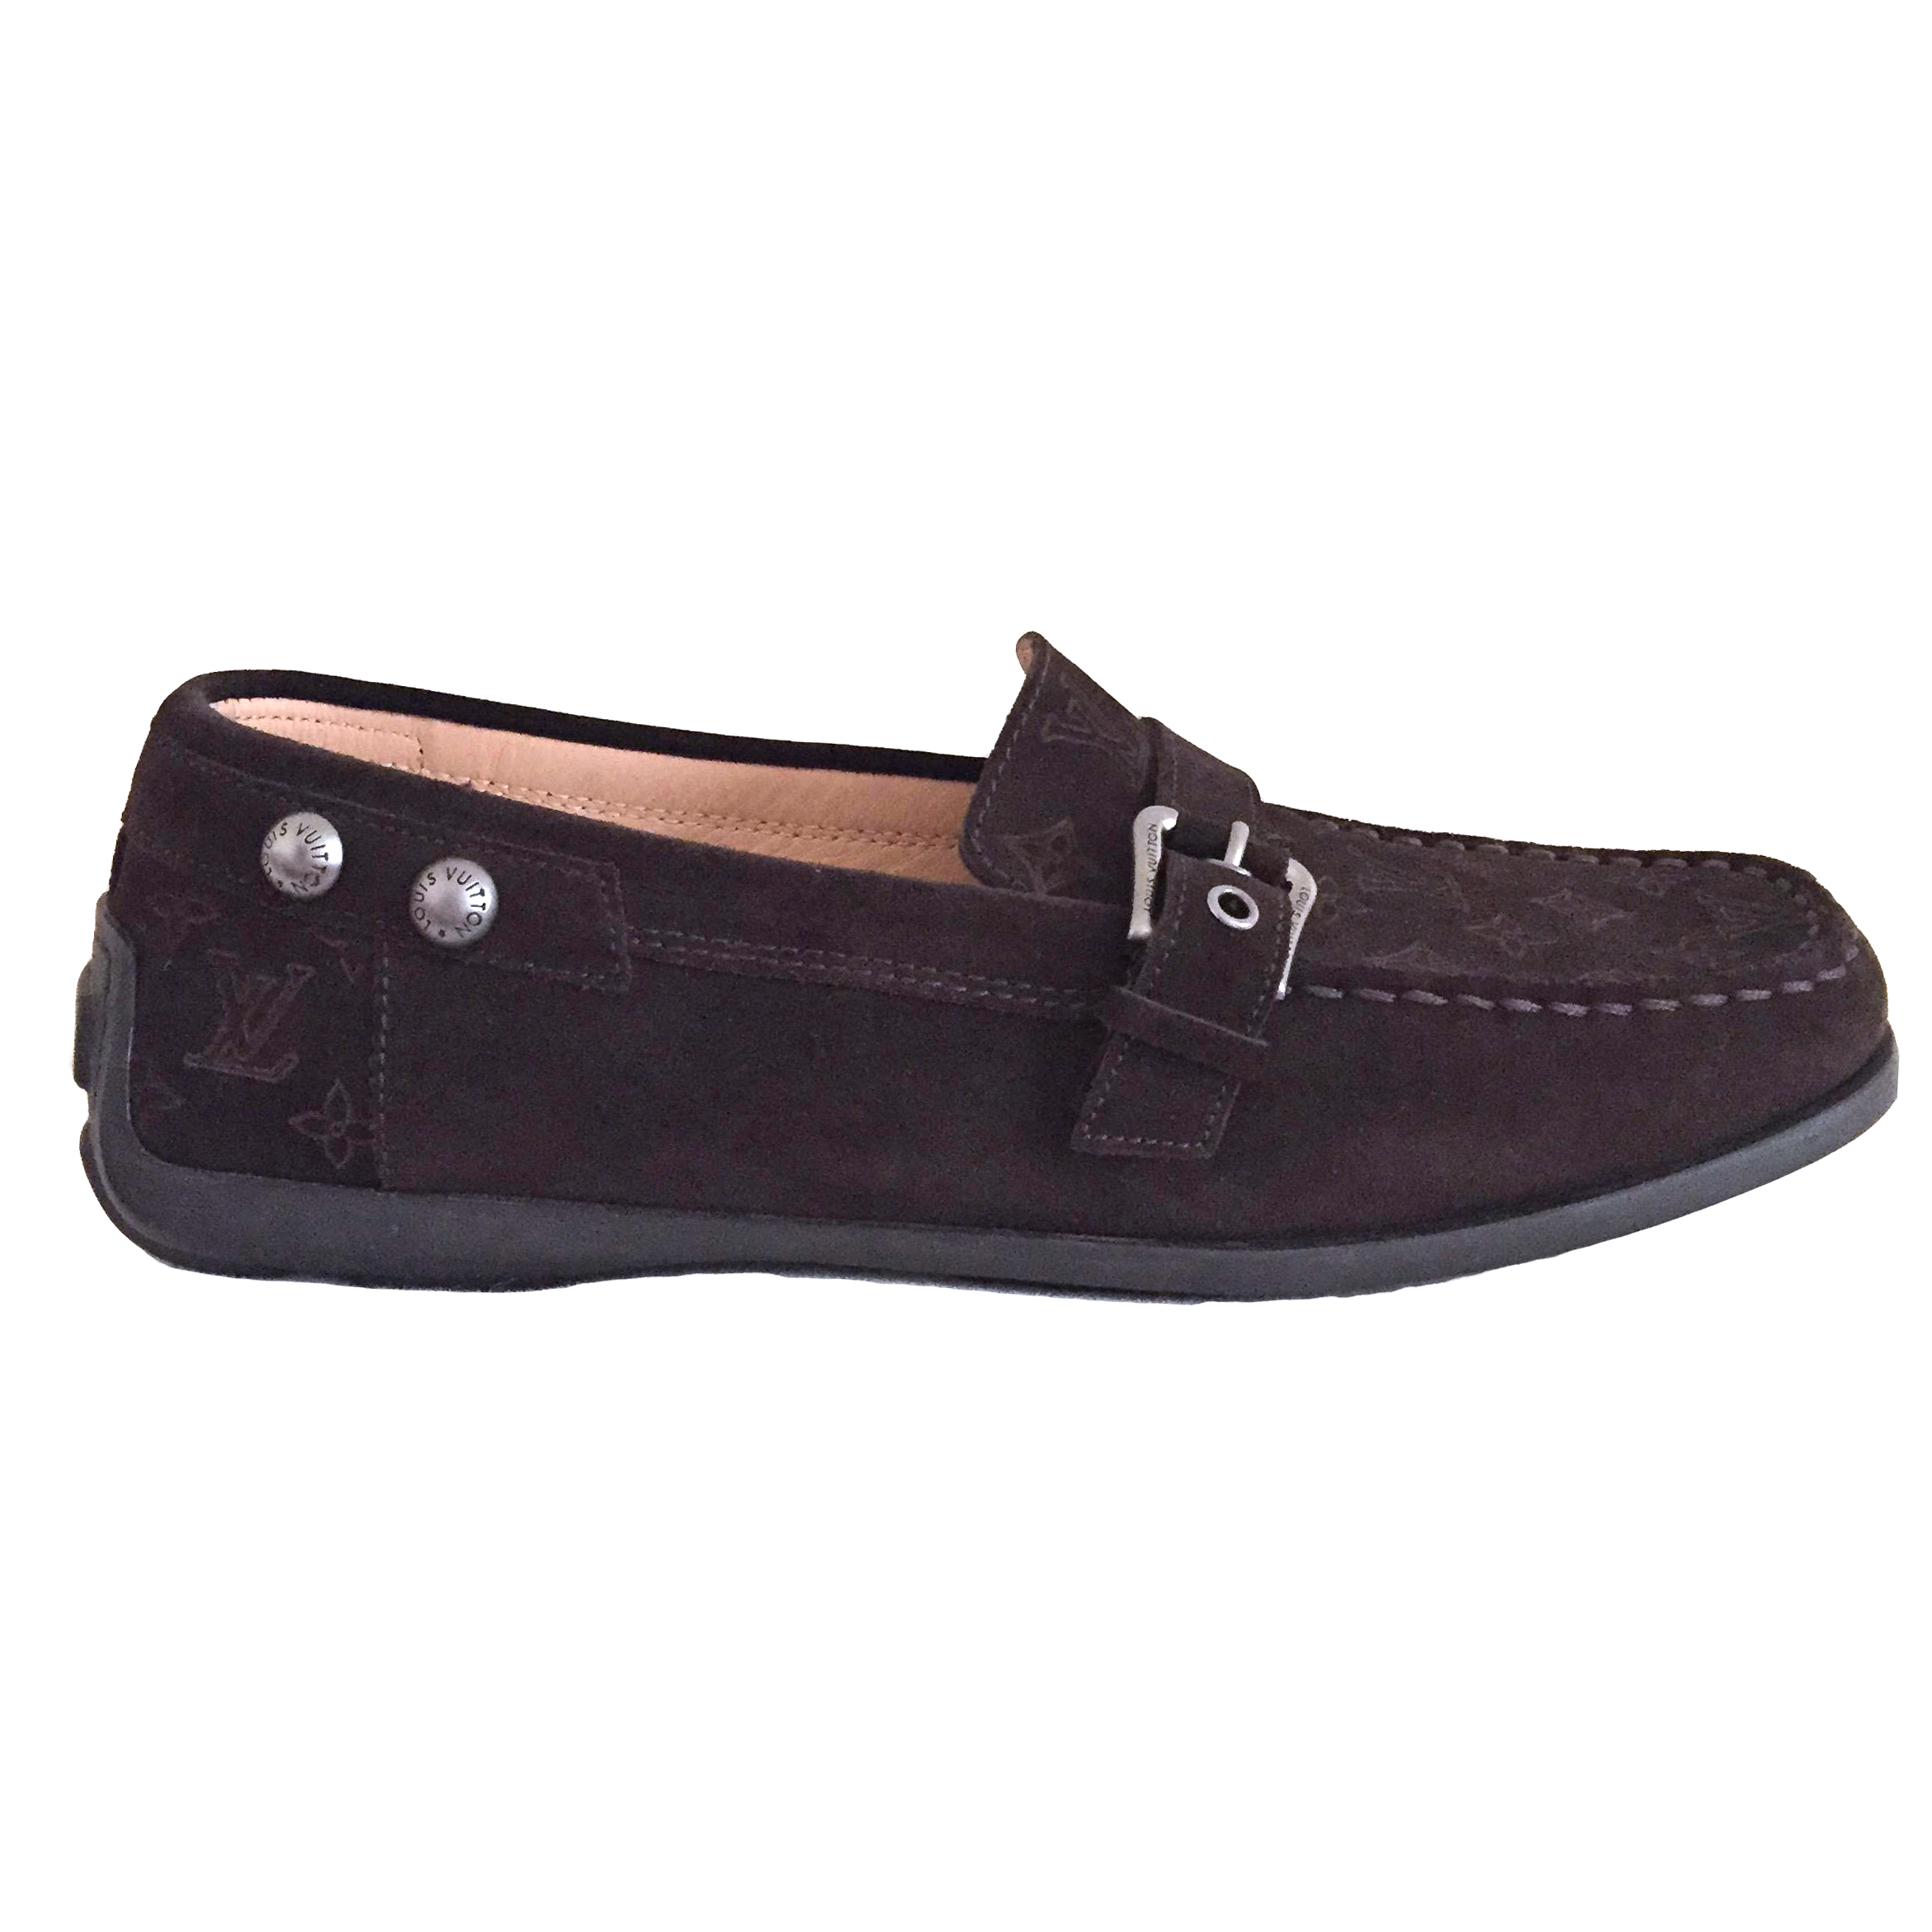 e85405ad126c Louis Vuitton Ladies Loafers